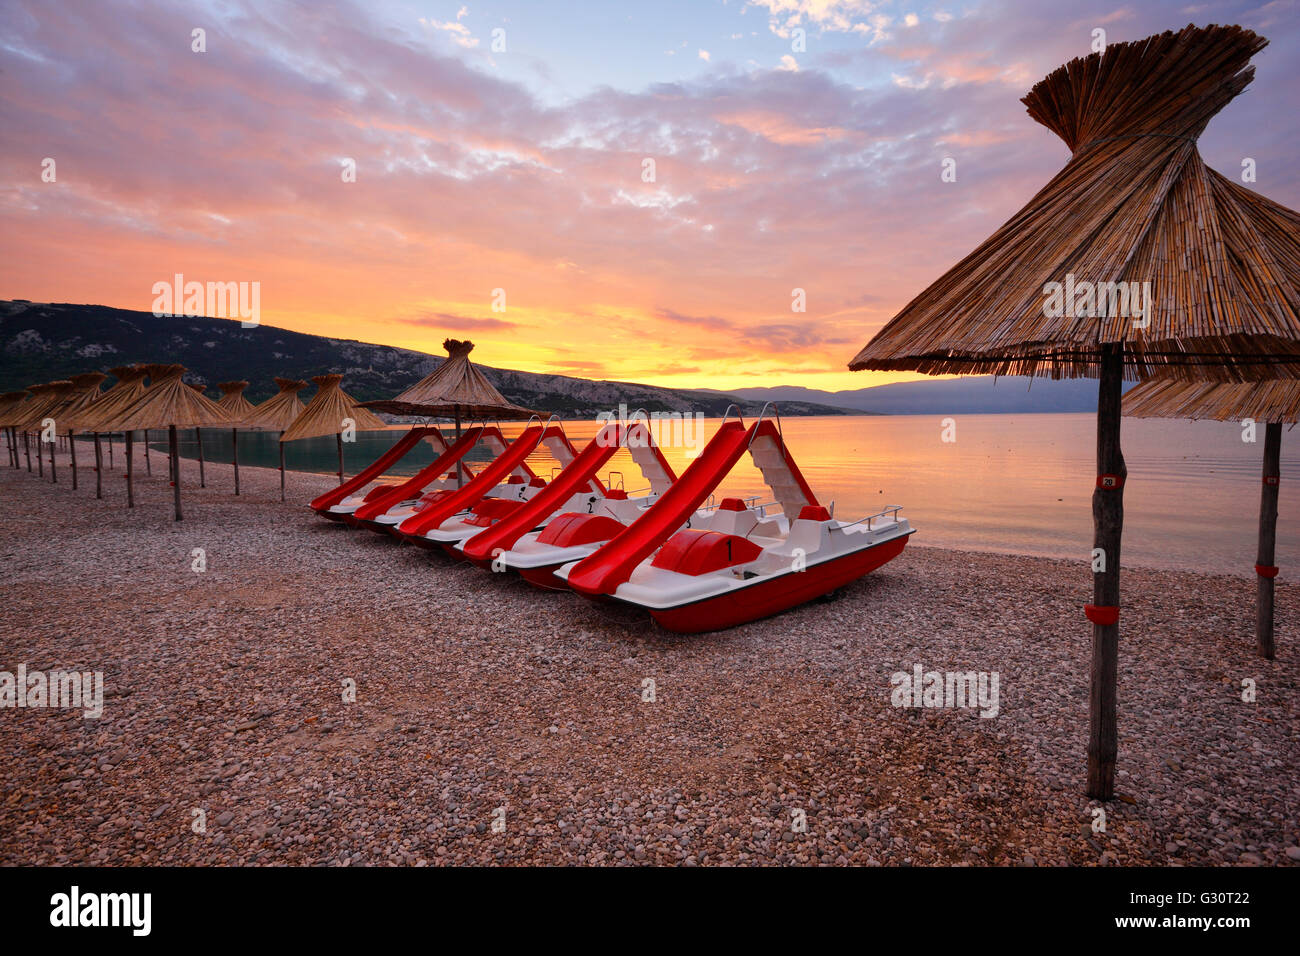 Straw umbrellas and water pedal boats on the beach in Baska, island Krk Stock Photo